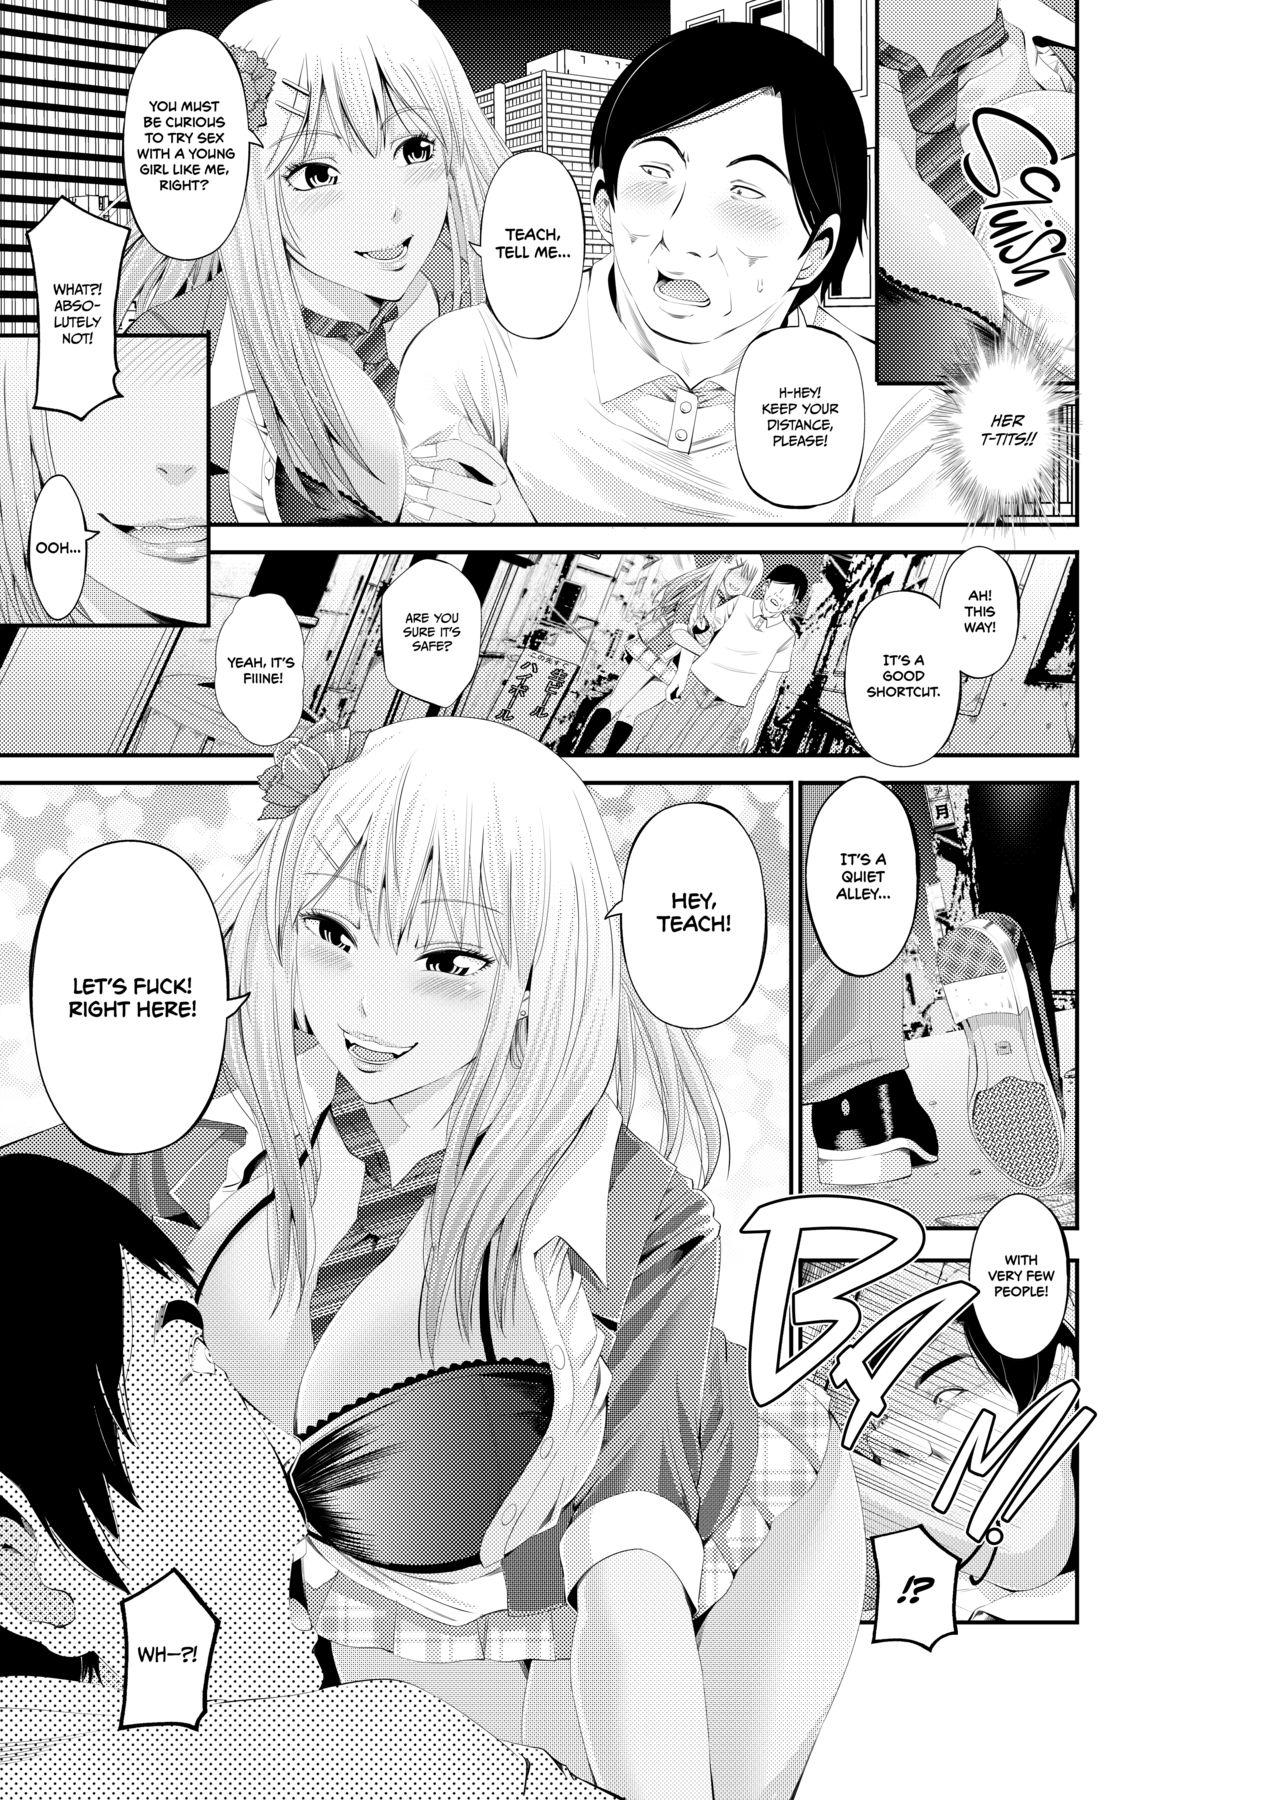 Special Love Hotel Sex Counseling: My Teacher's a Real Sex Machine! 4